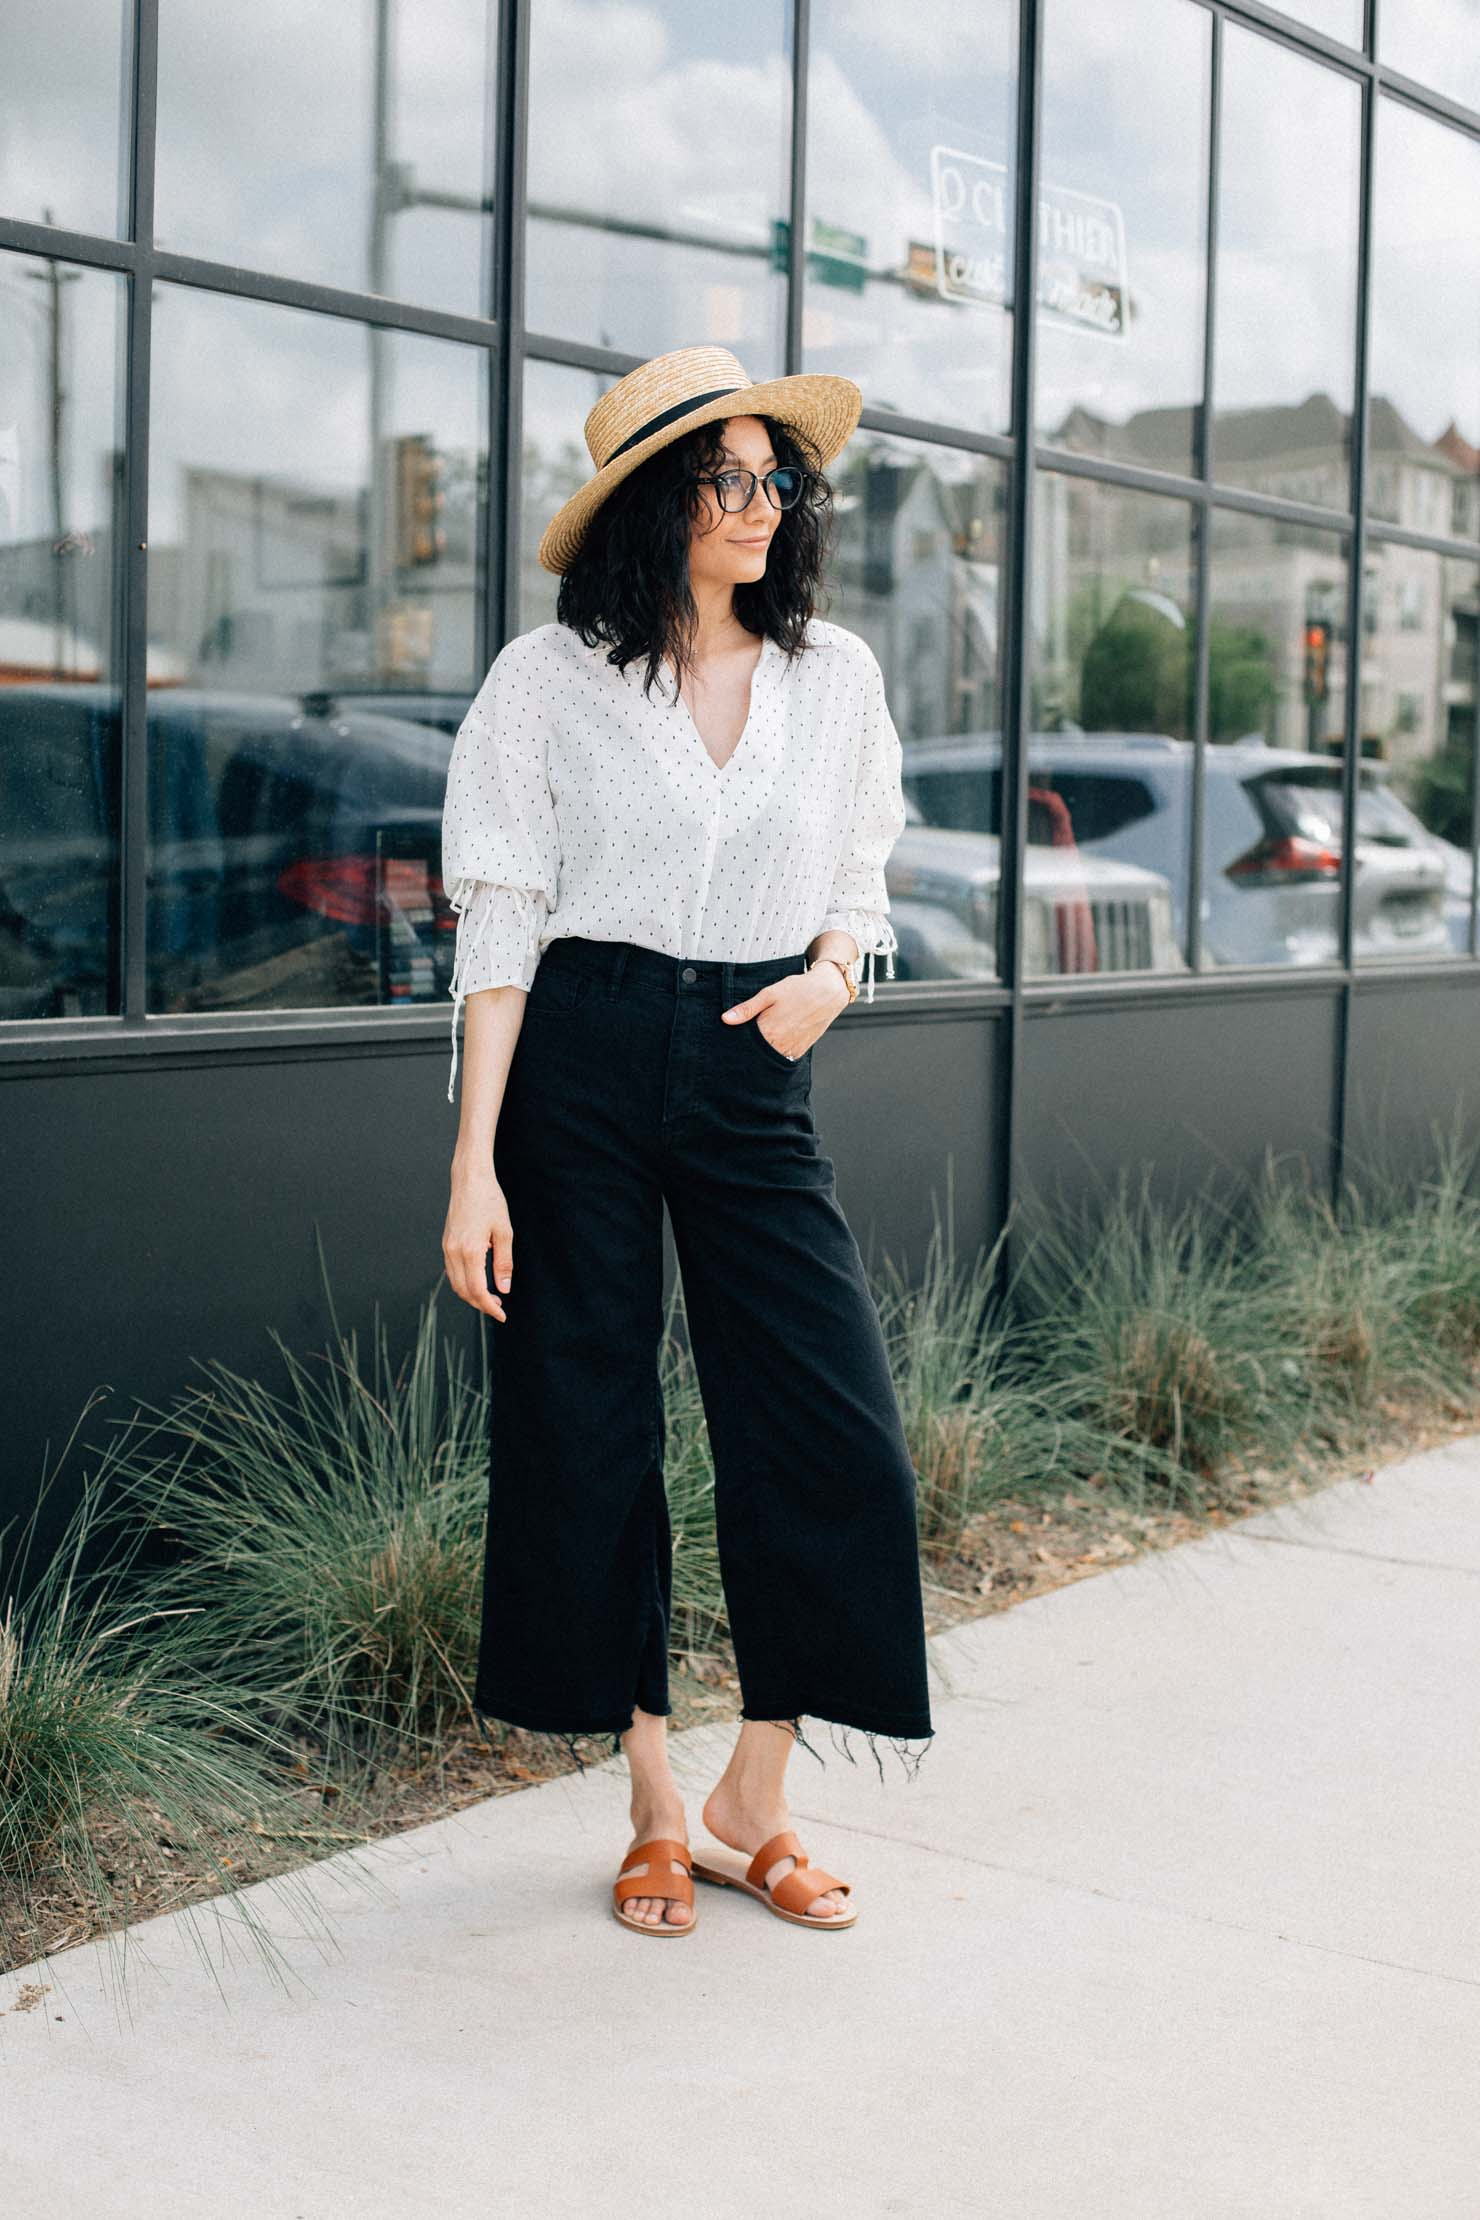 Lilly Beltran in a spring look wearing wide leg denim with a bell sleeve shirt and a straw hat